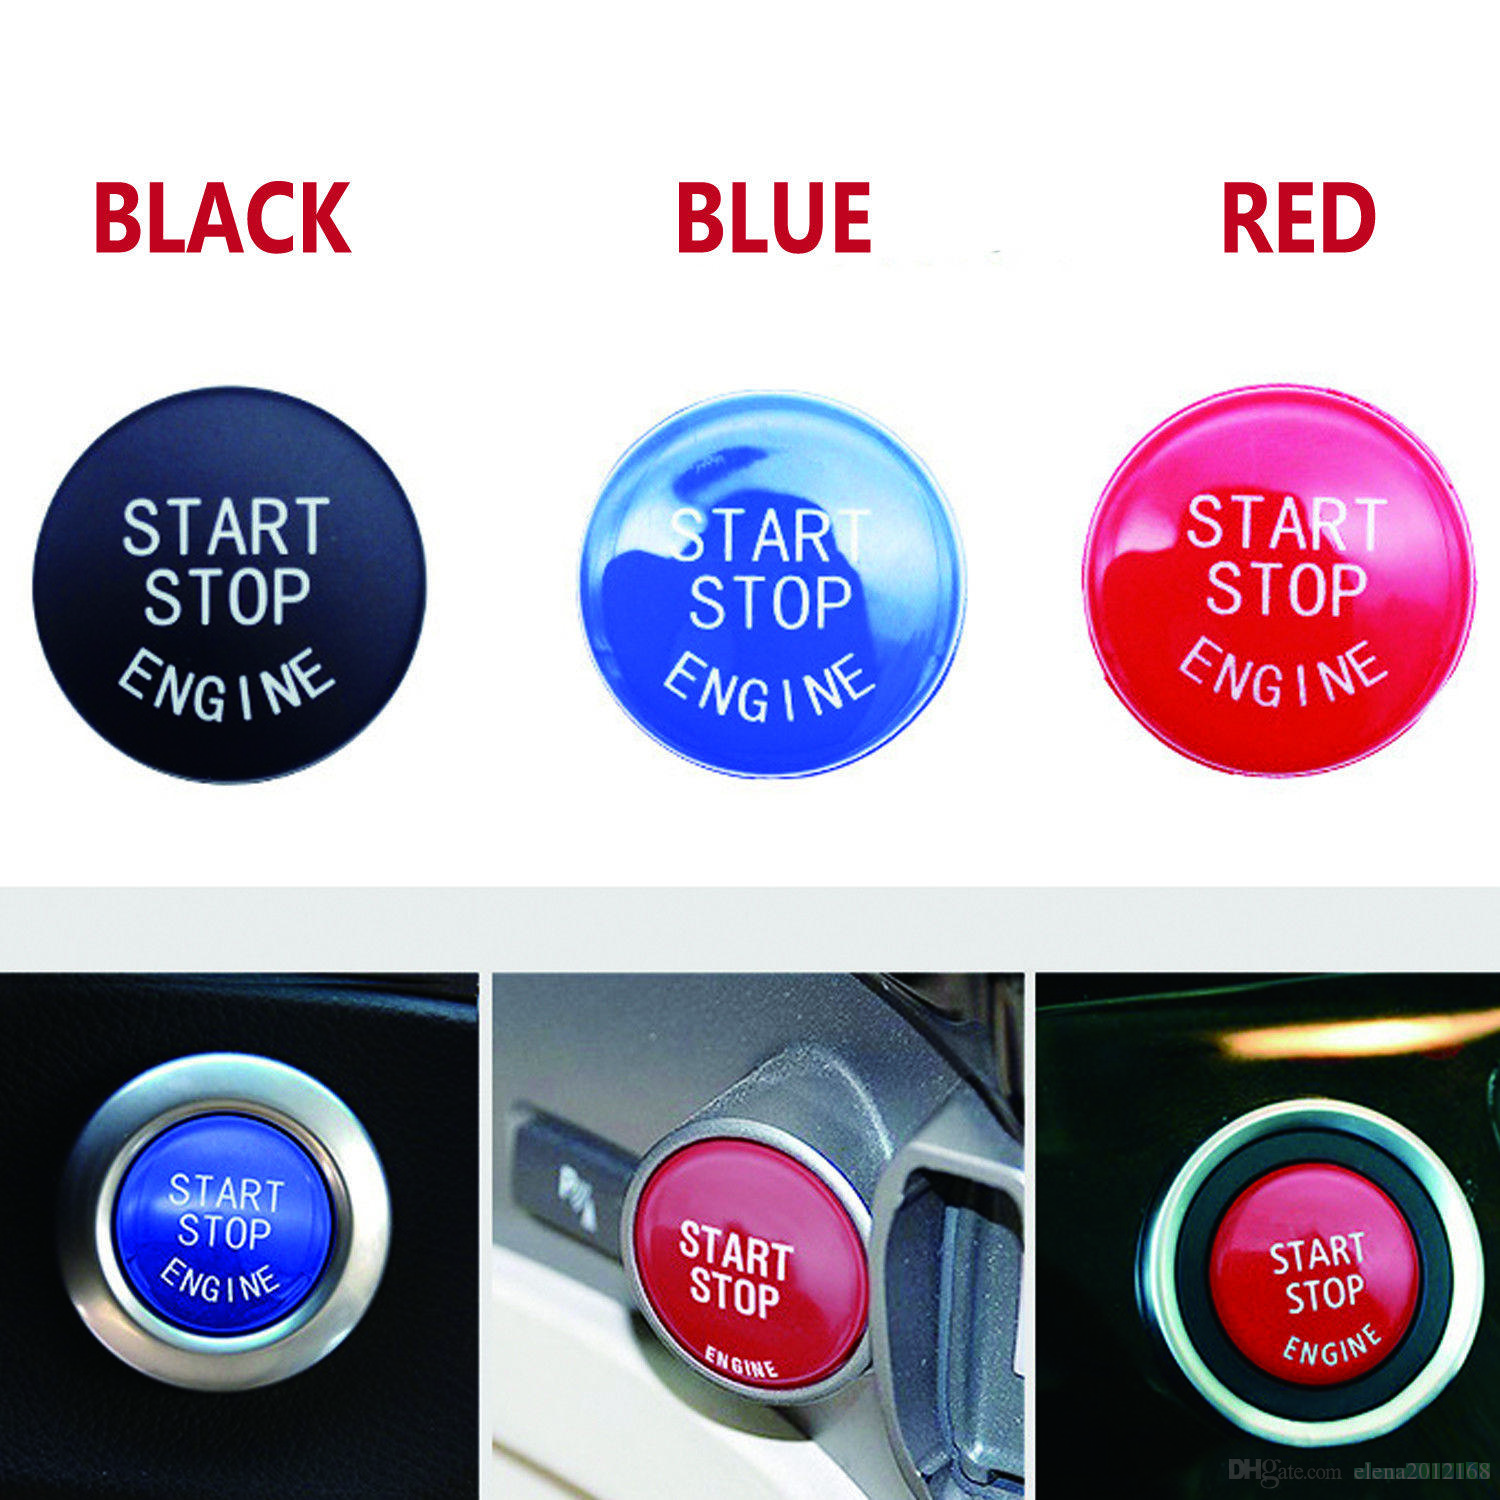 Engine Start Stop Switch Button Cover Blue Replace For BMW F20 F30 F10 F01 F25